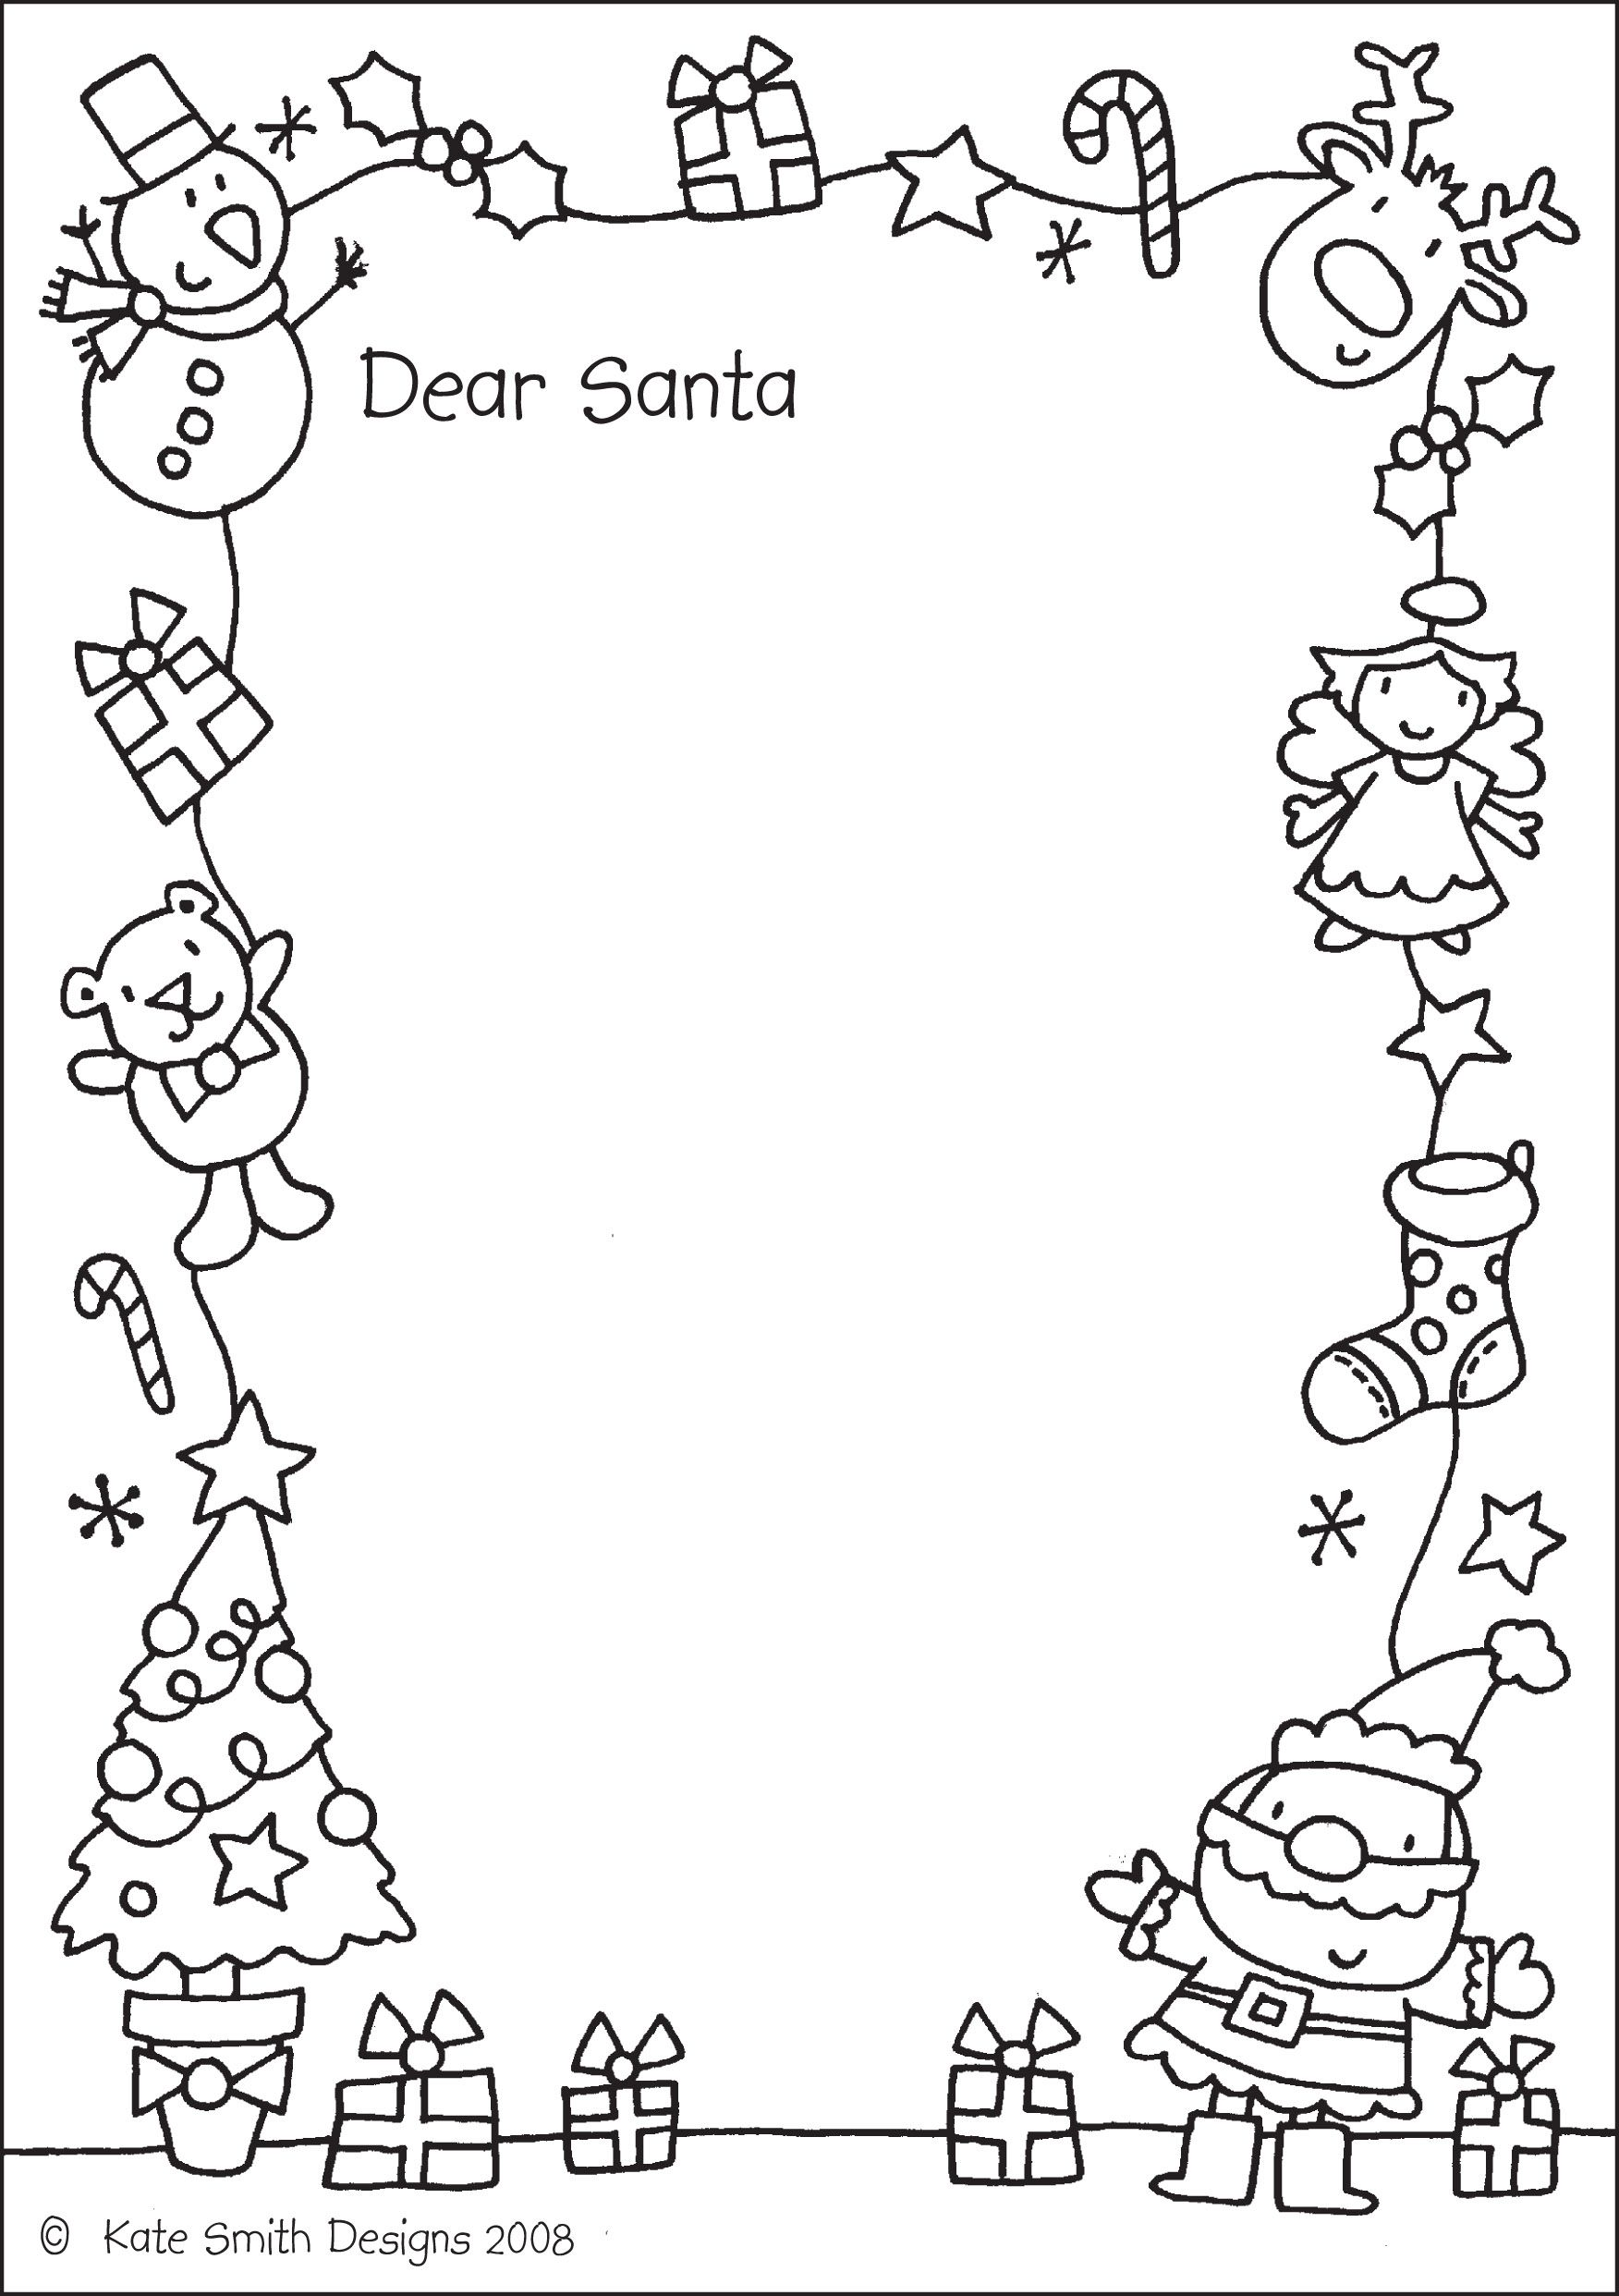 Dear Santa Coloring Page With Dont Forget To Bring Your Letters On 12 2 Christmas